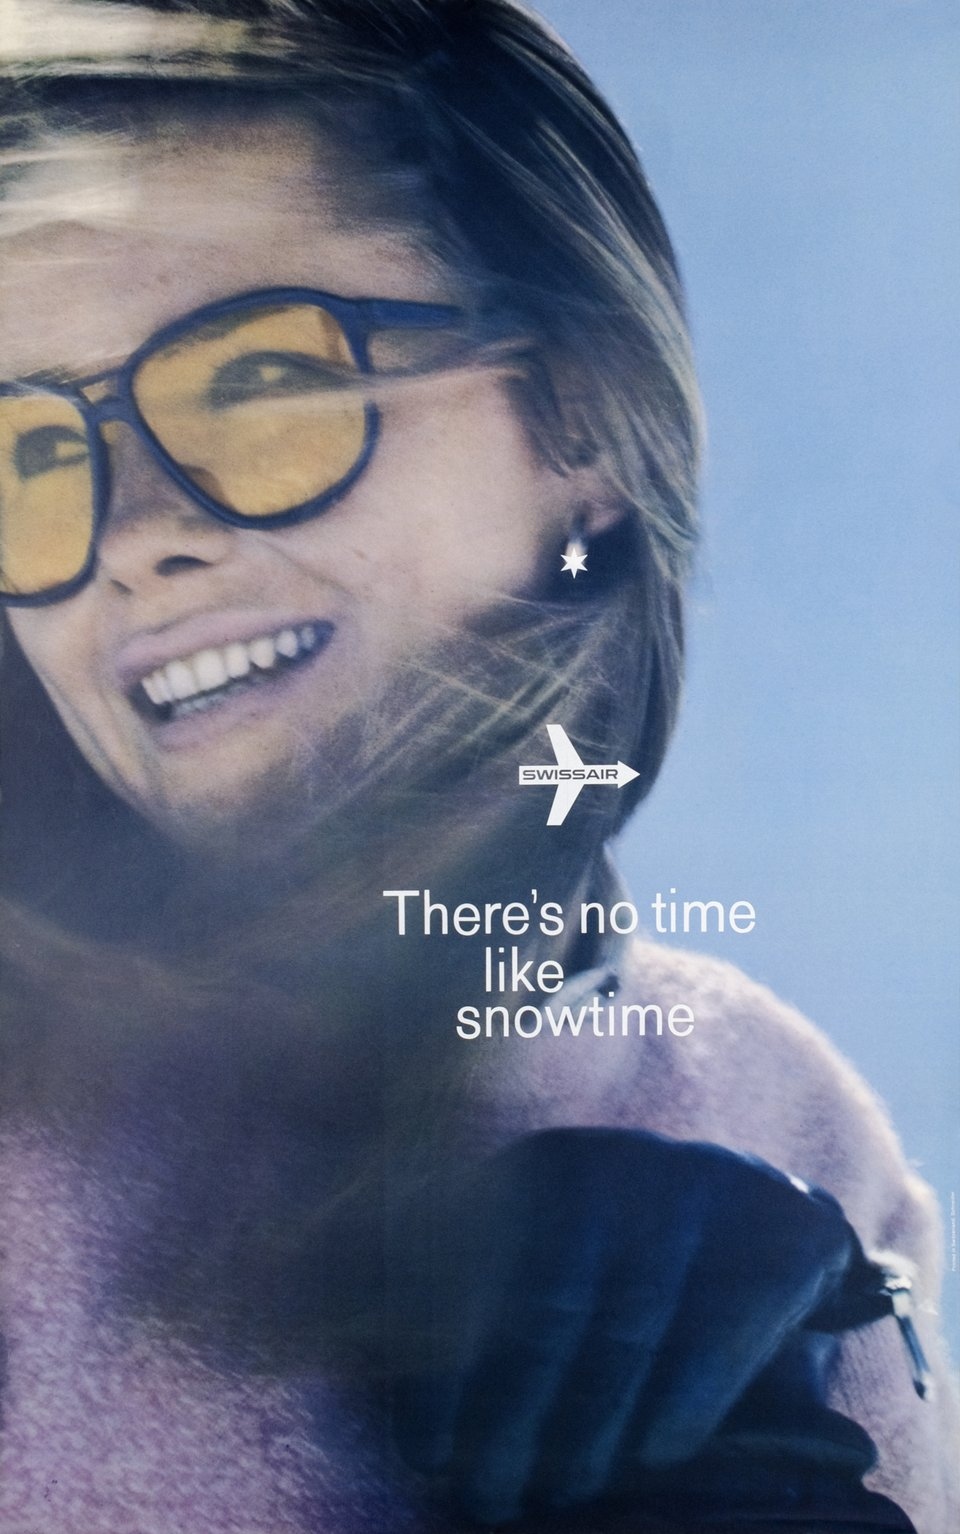 Swissair, There's no time like snowtime – Affiche ancienne – SCHNEIDER – 1975